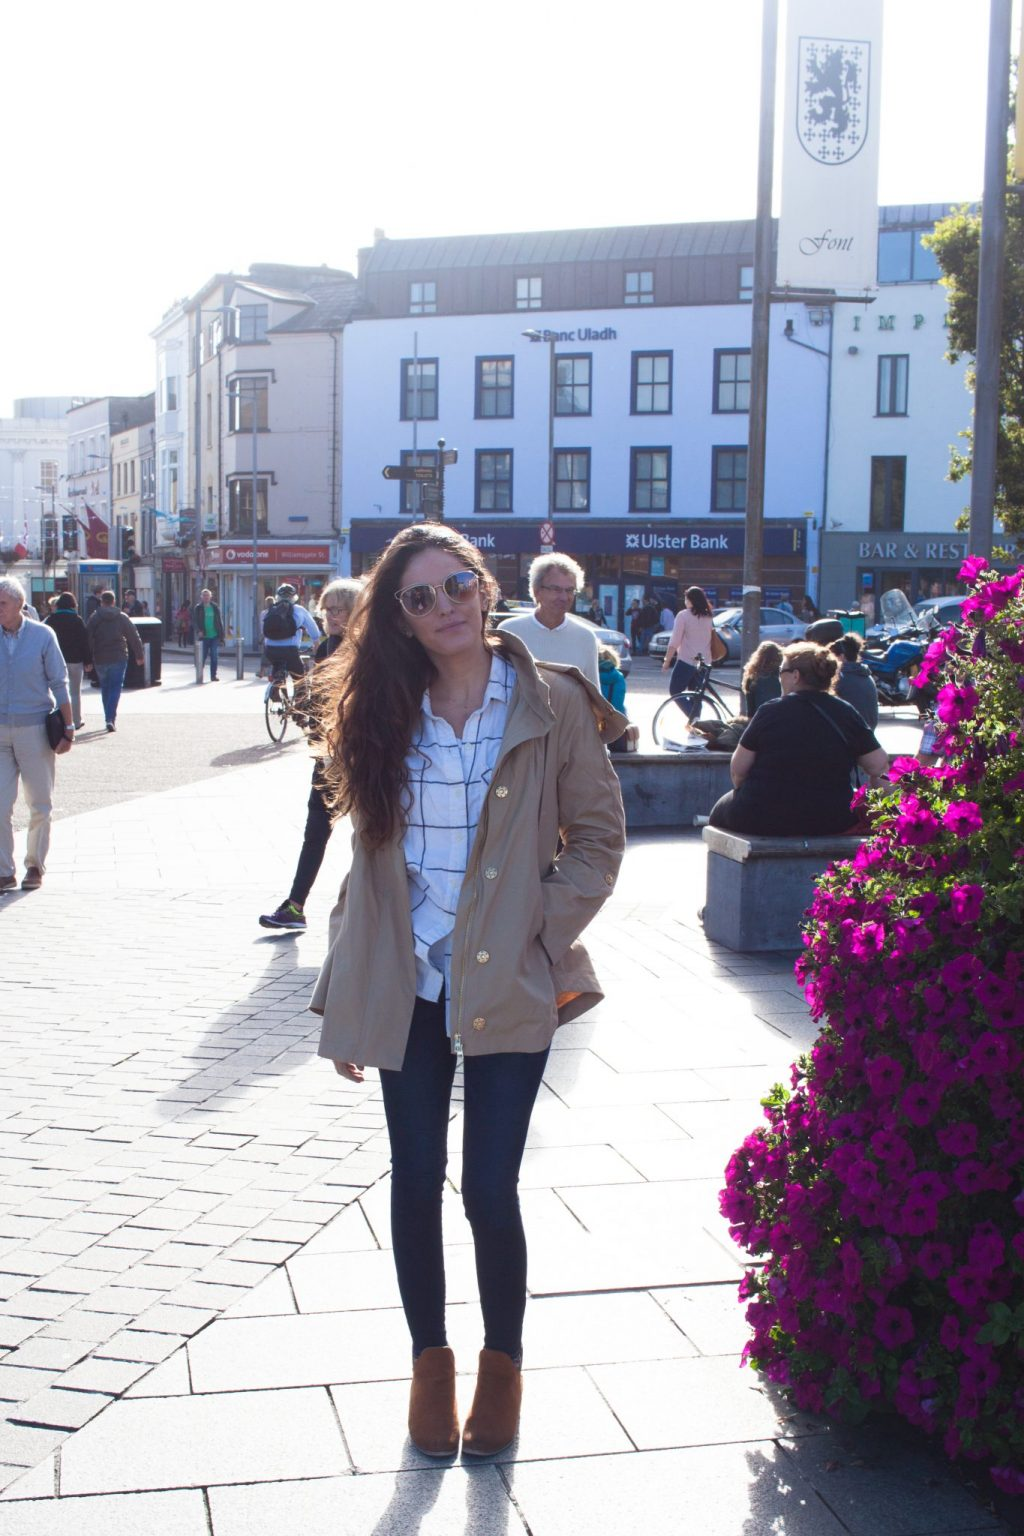 galway, ireland, what to wear in galway, what to do in galway, what to wear in ireland in september, windowpane flannel button down, trench coat, stylish fall outfit ideas, classic fall outfits, clean fall outfits